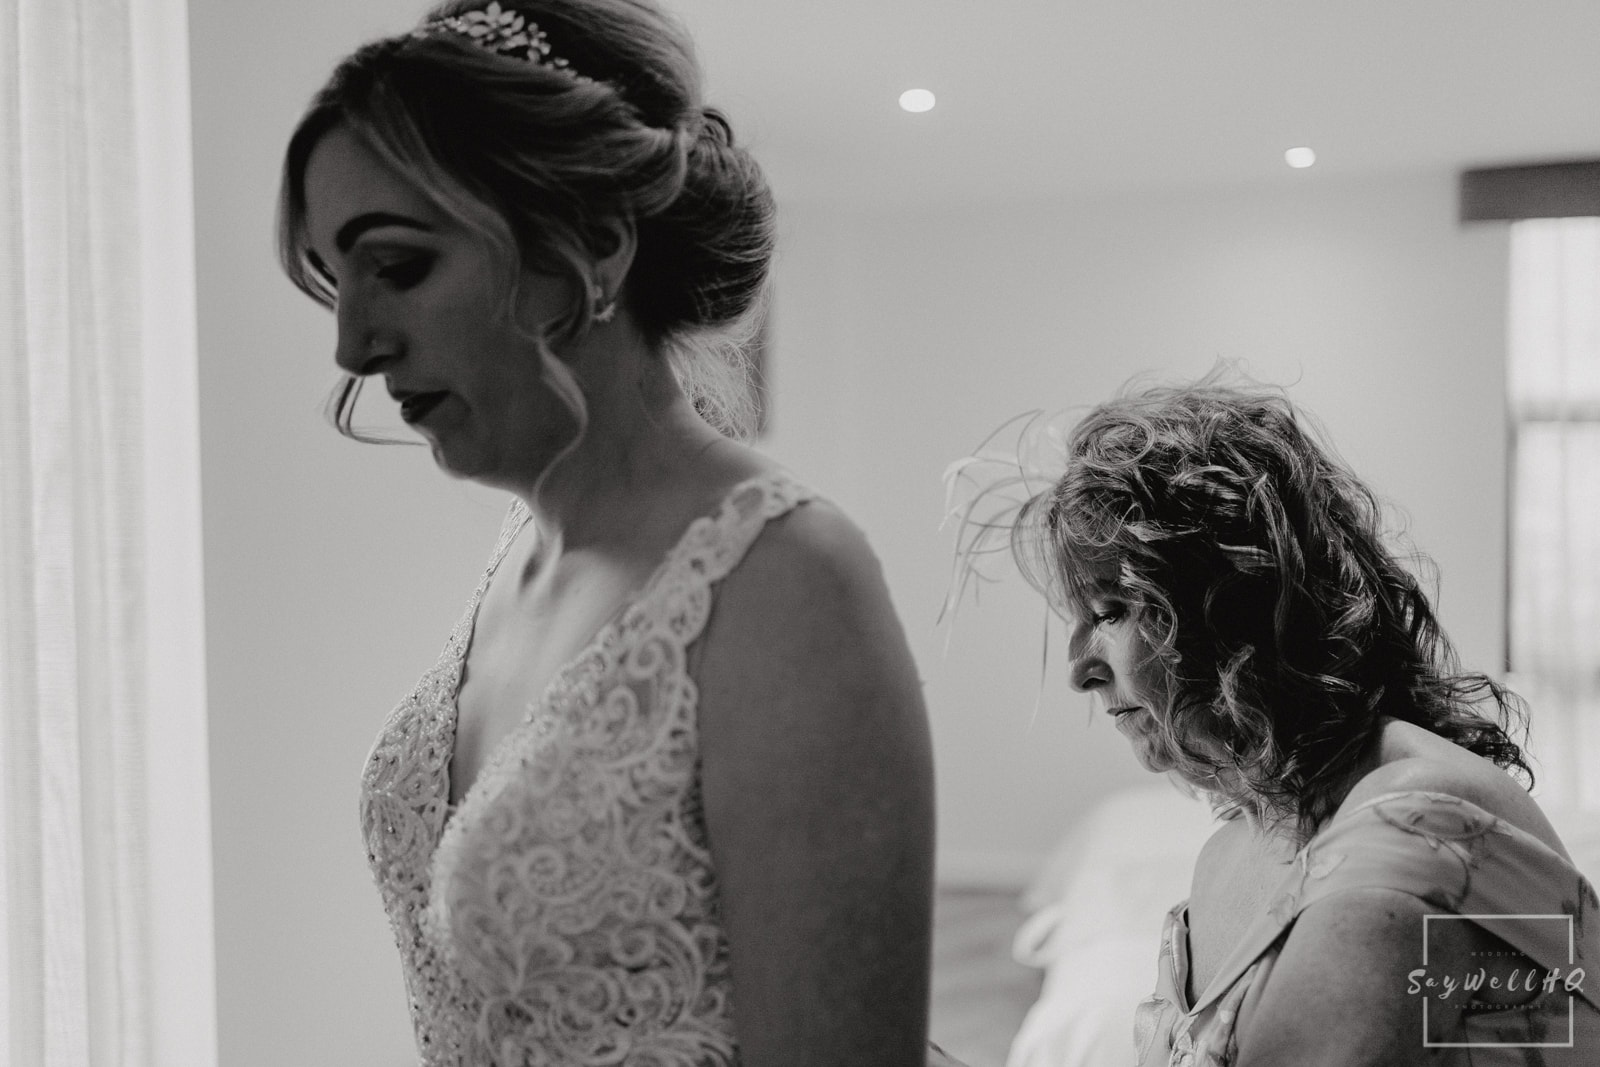 Goosedale Wedding Photography + Goosedale Wedding Photographer + Bride getting help from her Mum in getting in her wedding dress on the morning of her wedding